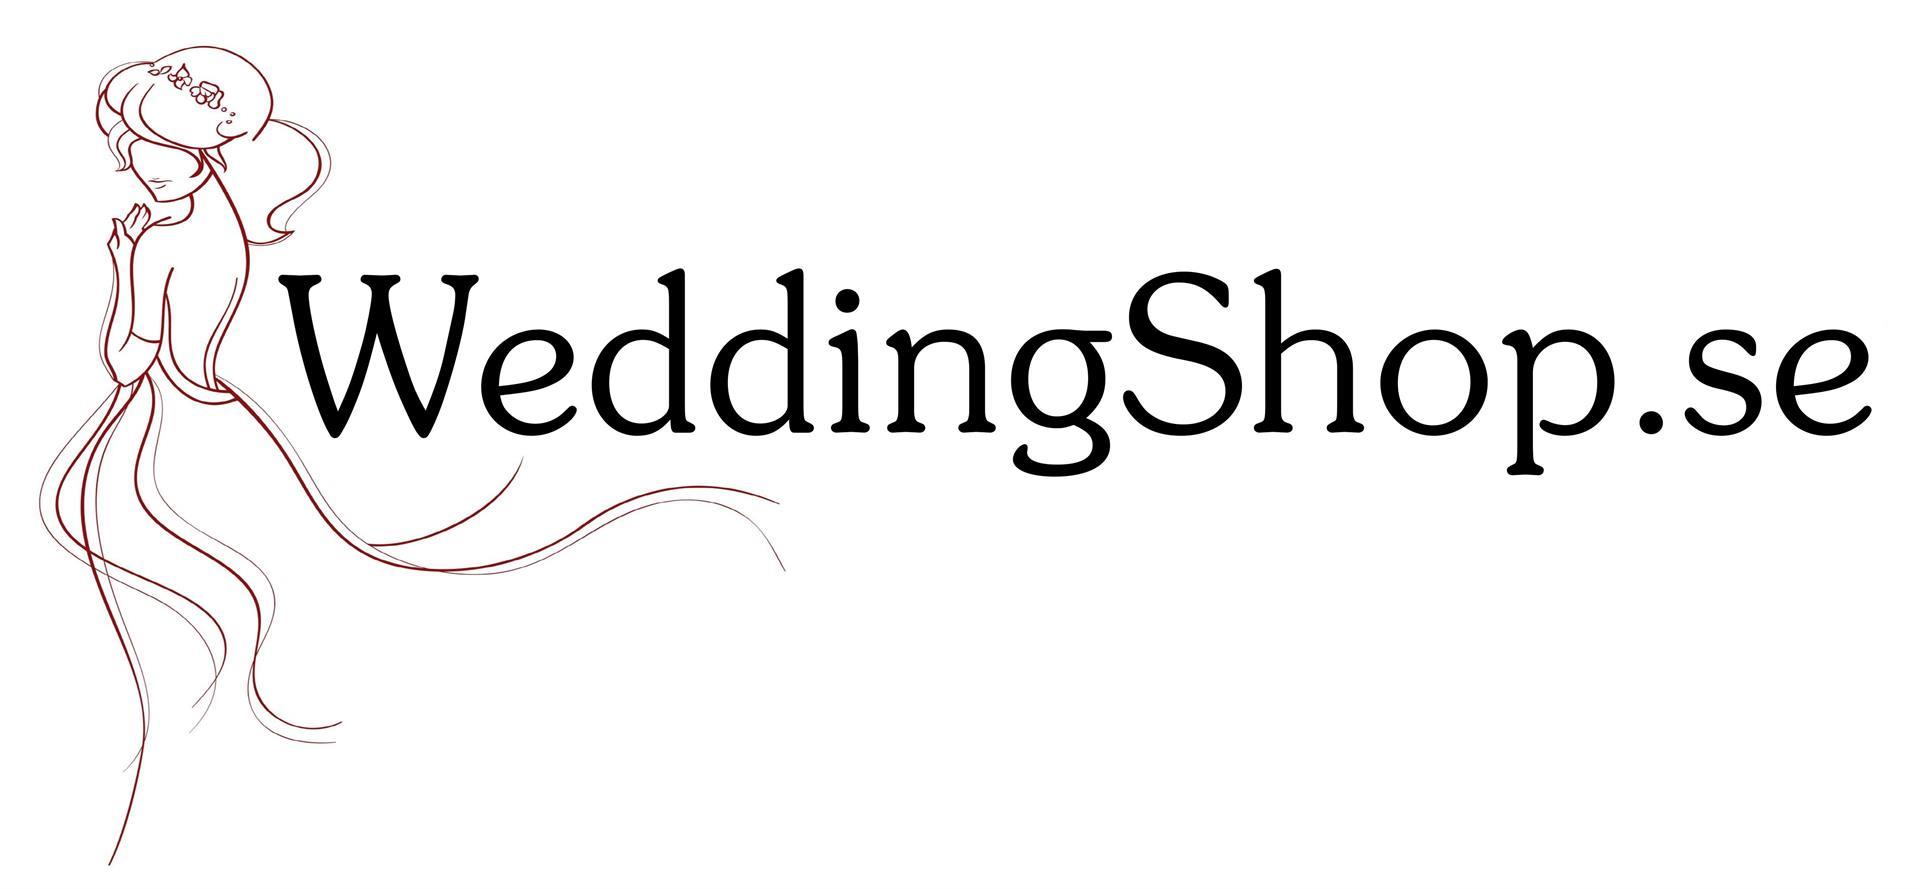 Weddingshop.se